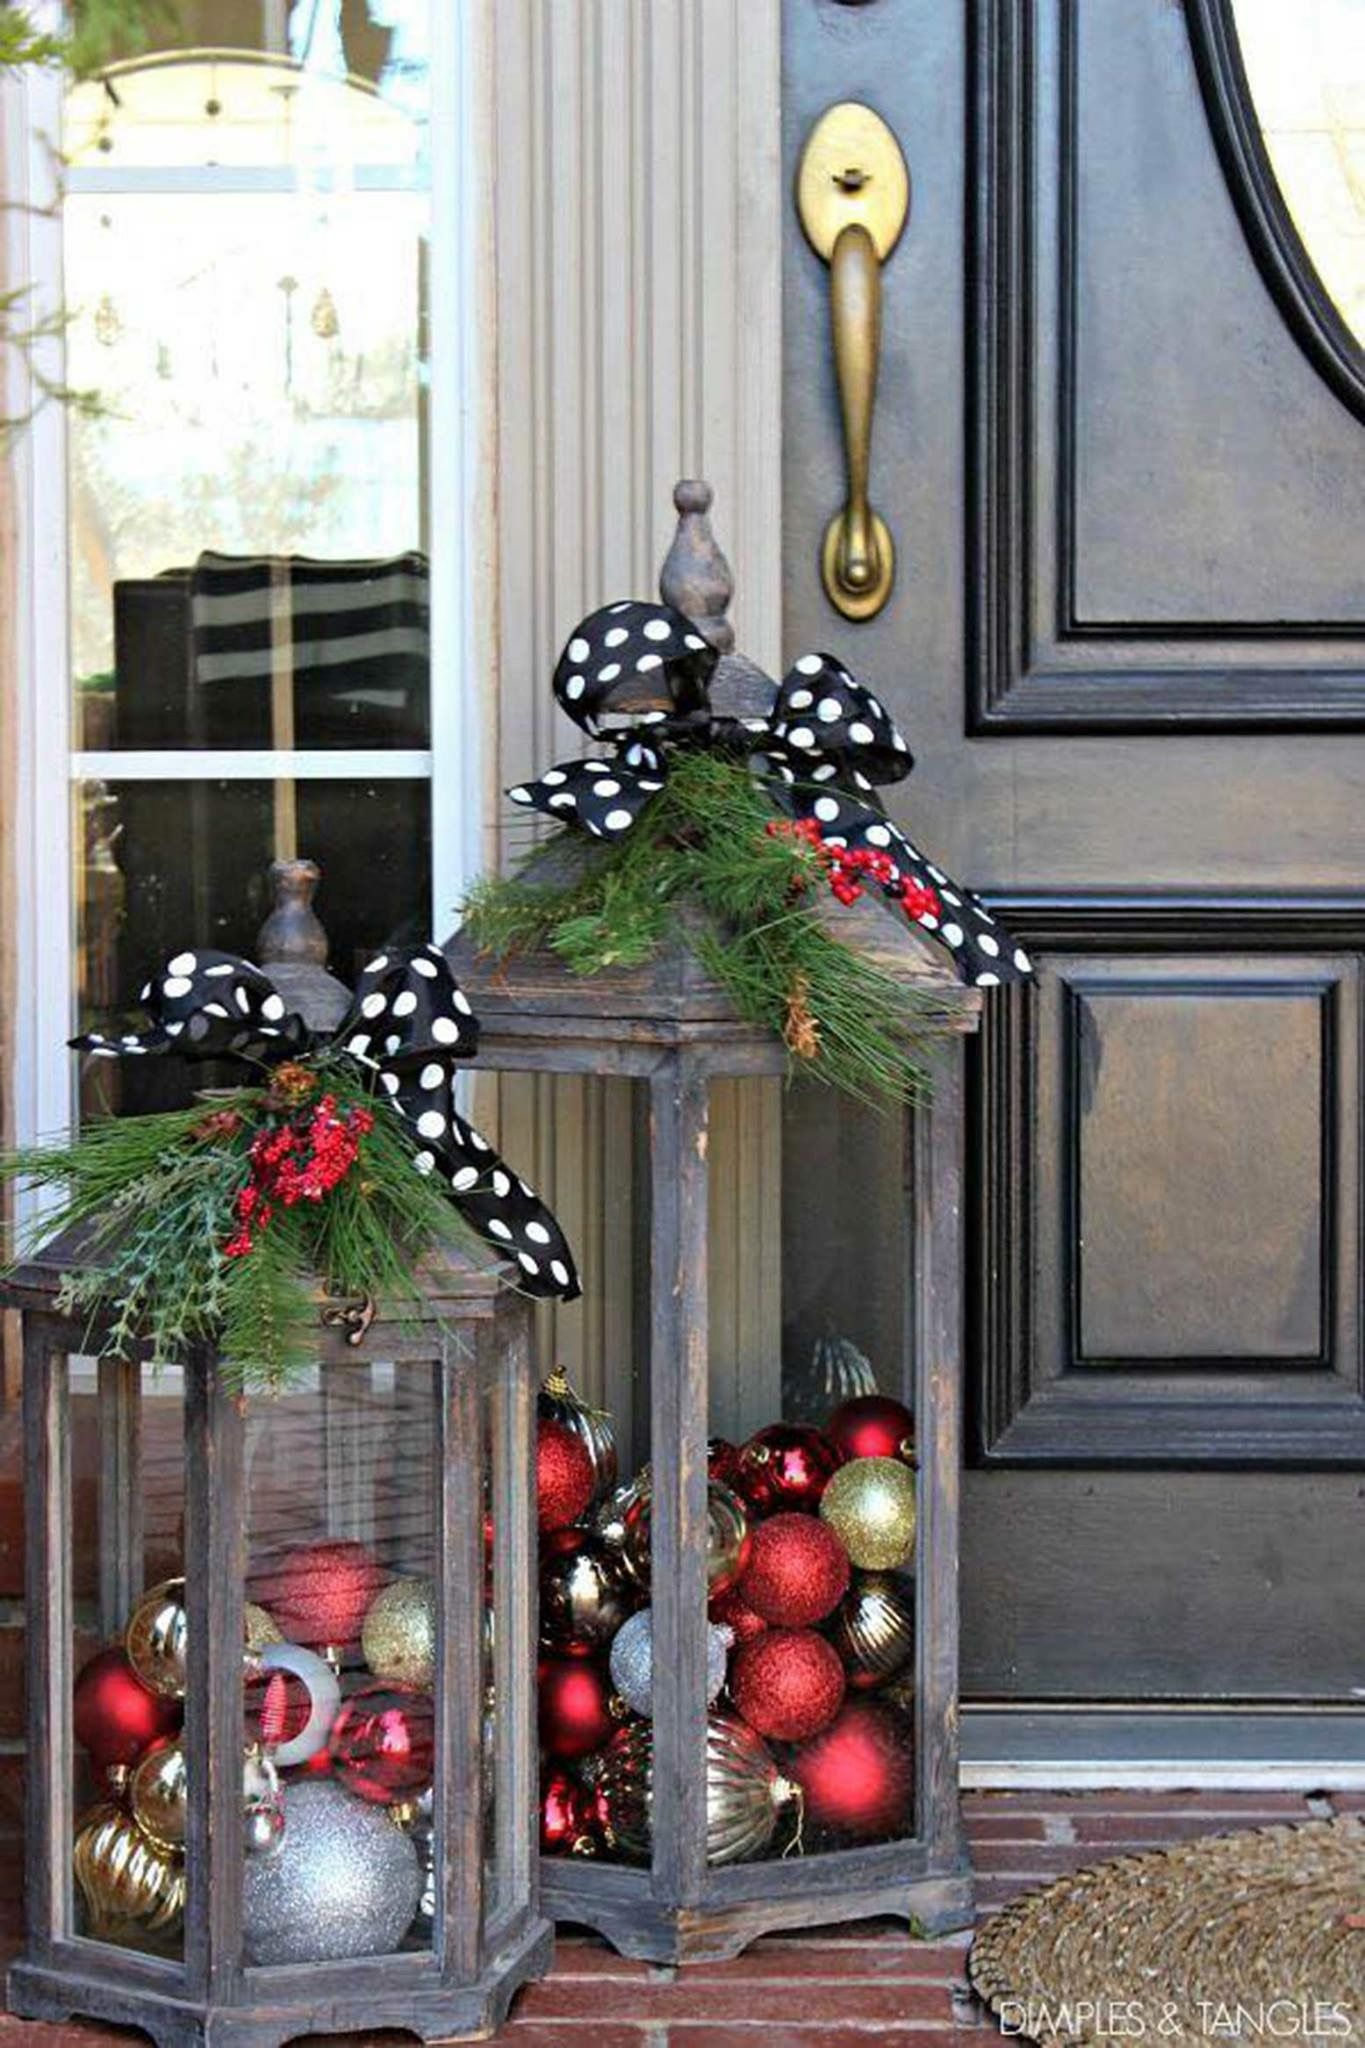 Beautiful outdoor christmas decorations - 10 Outdoor Christmas Decorations That Are Simply Magical Give Front Door The City Glam You Love Filling Lanterns With Shiny Ornaments And Adorning Them